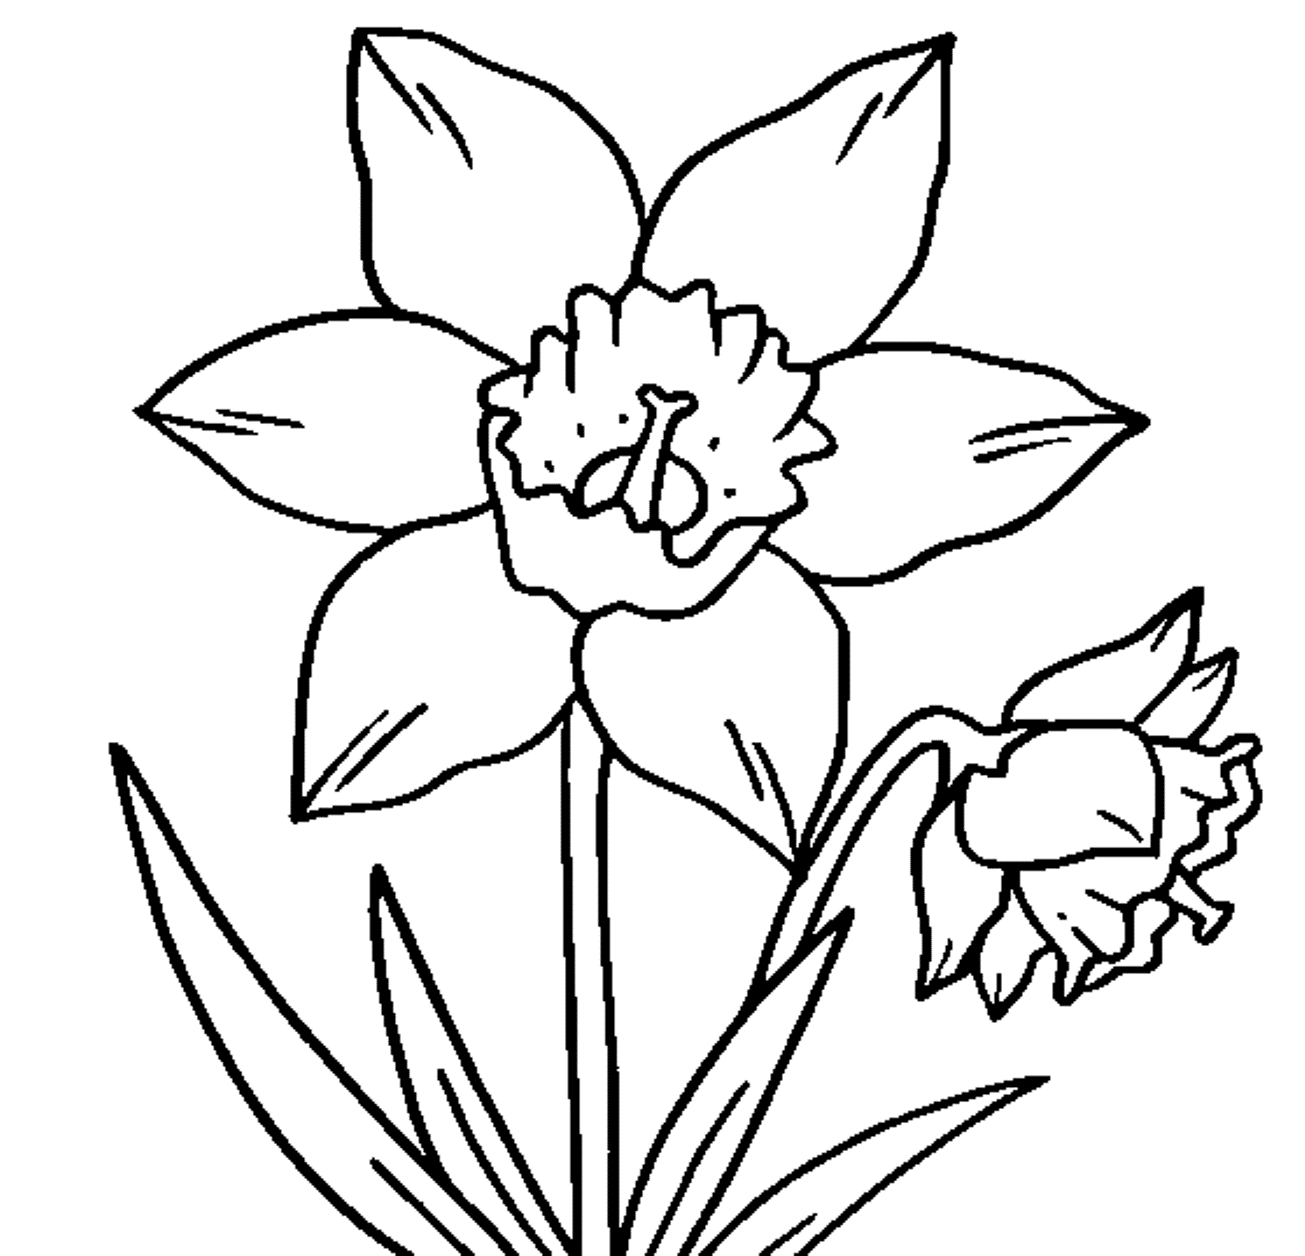 sunflower coloring page - daffodil clipart black and white images